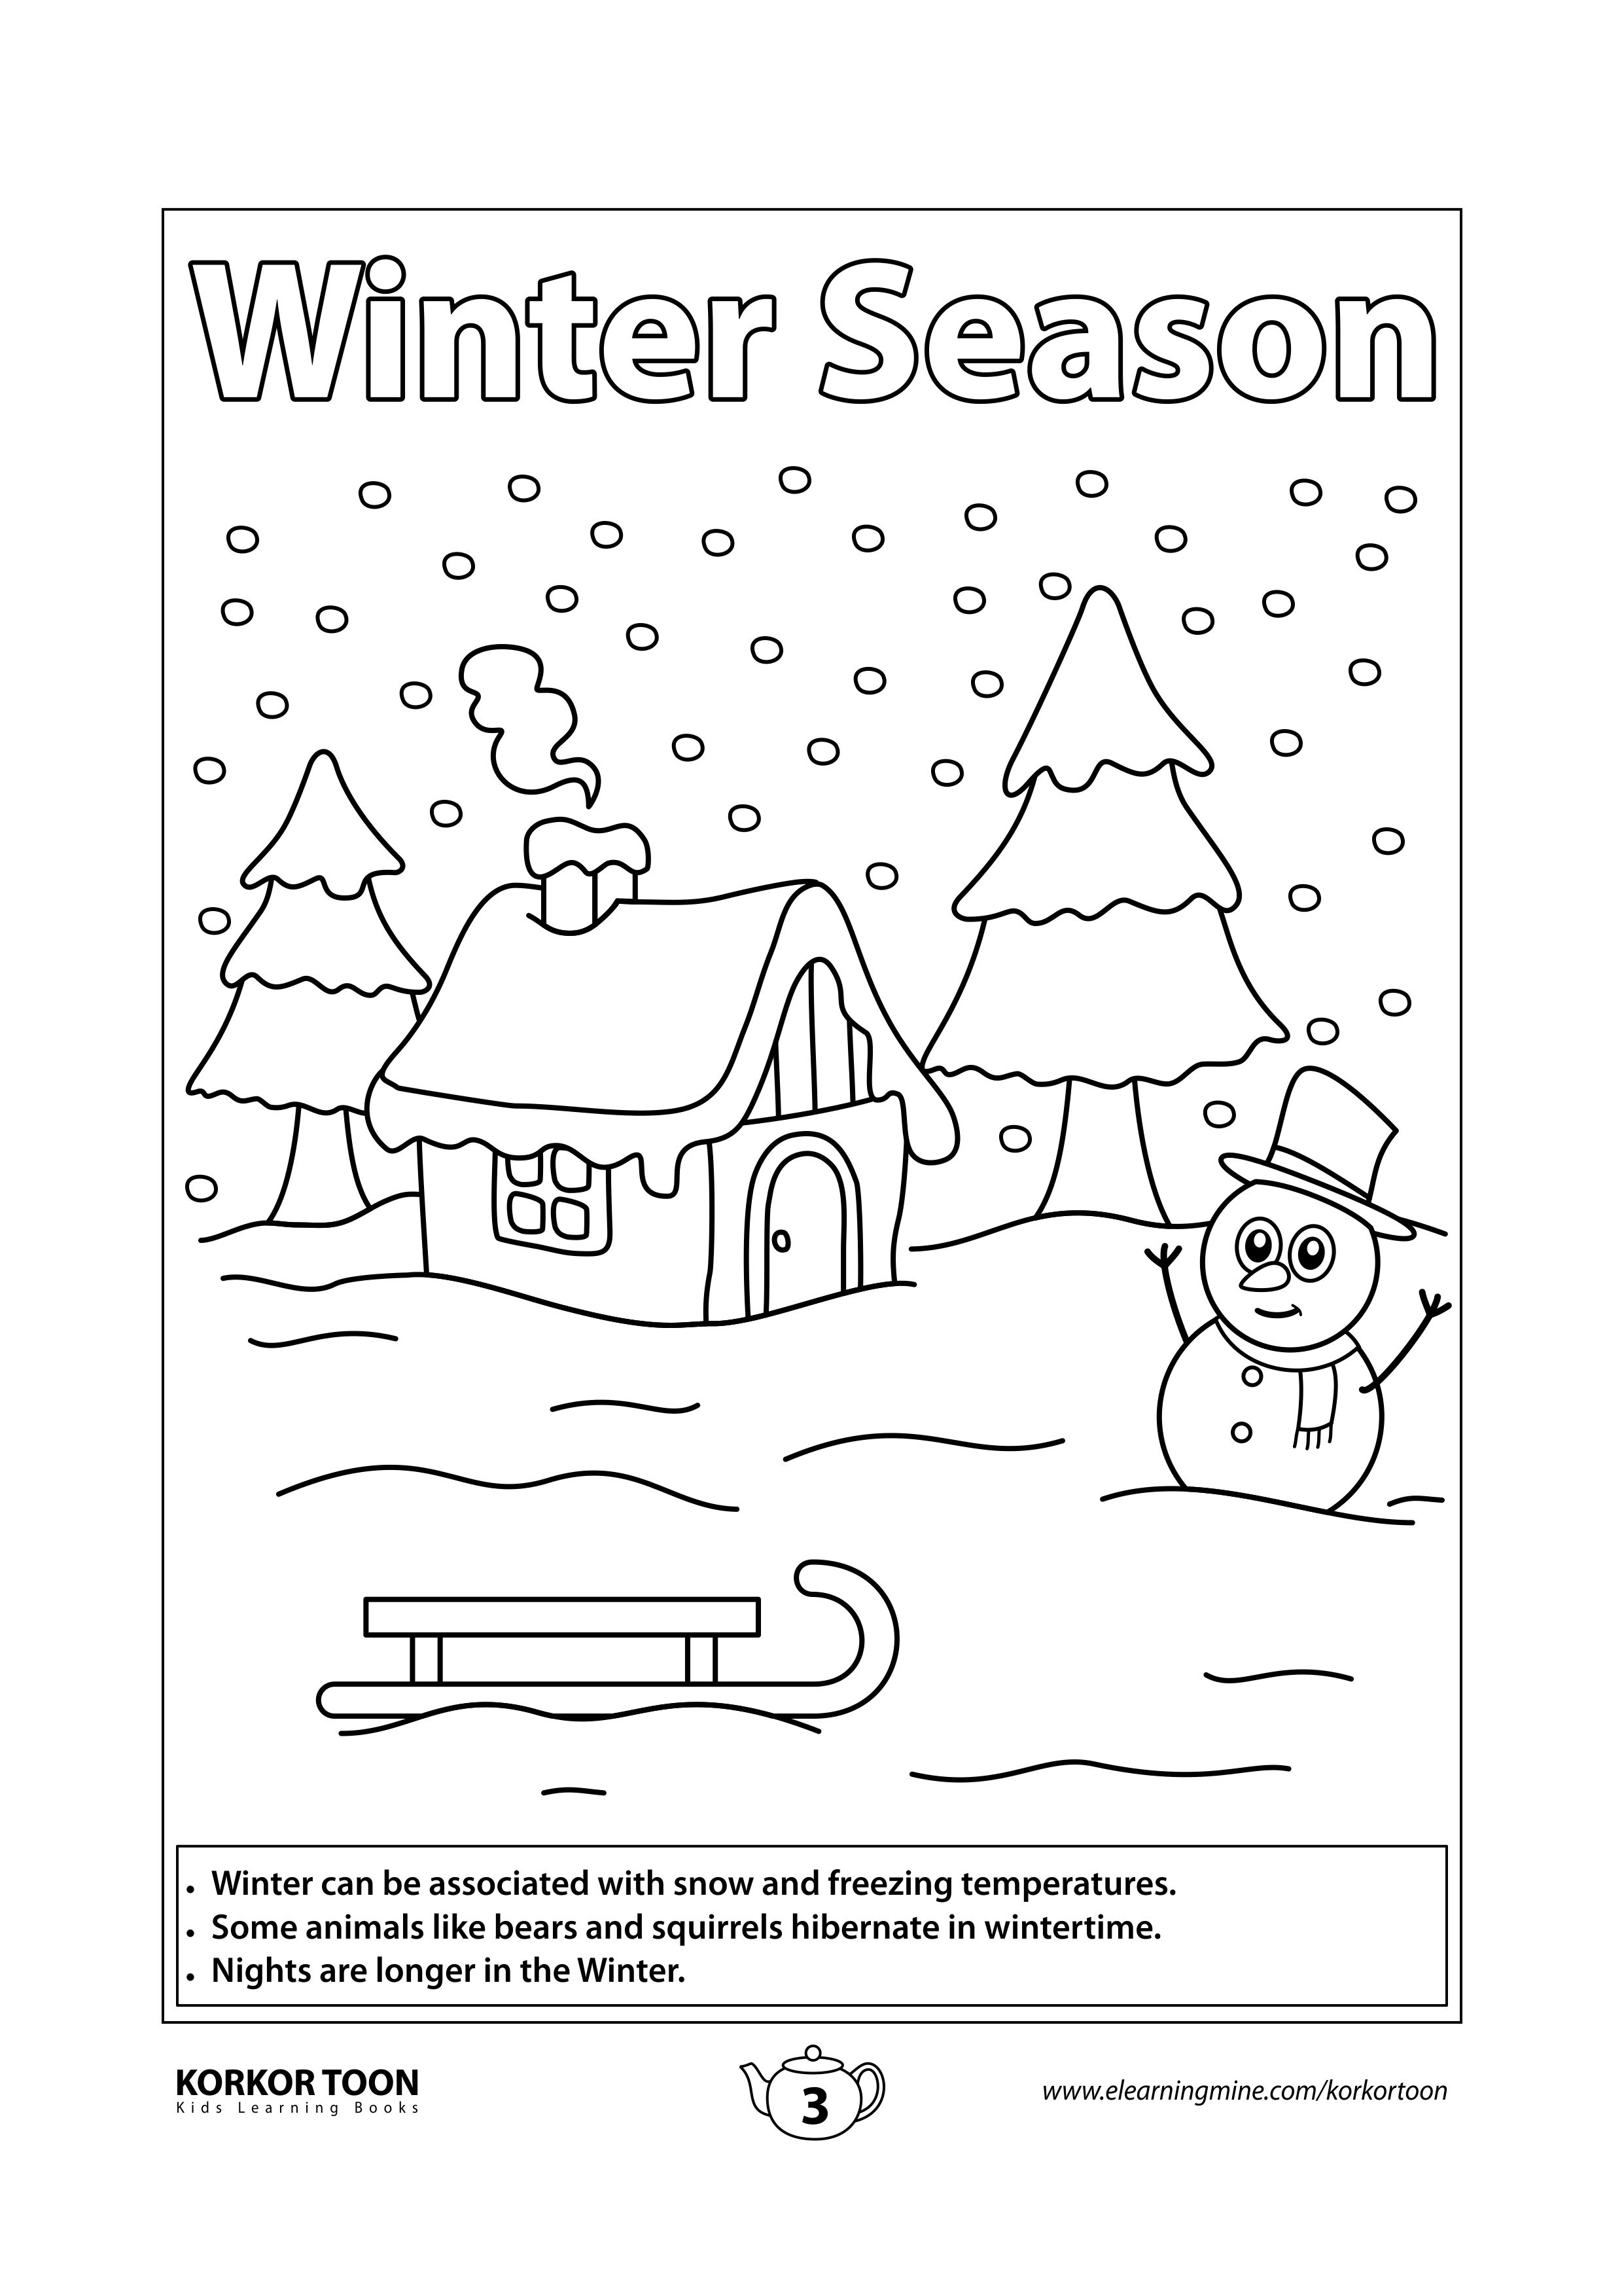 Seasons Coloring Book For Kids Winter Season Coloring Page In 2021 Coloring Books Kids Coloring Books Coloring Pages